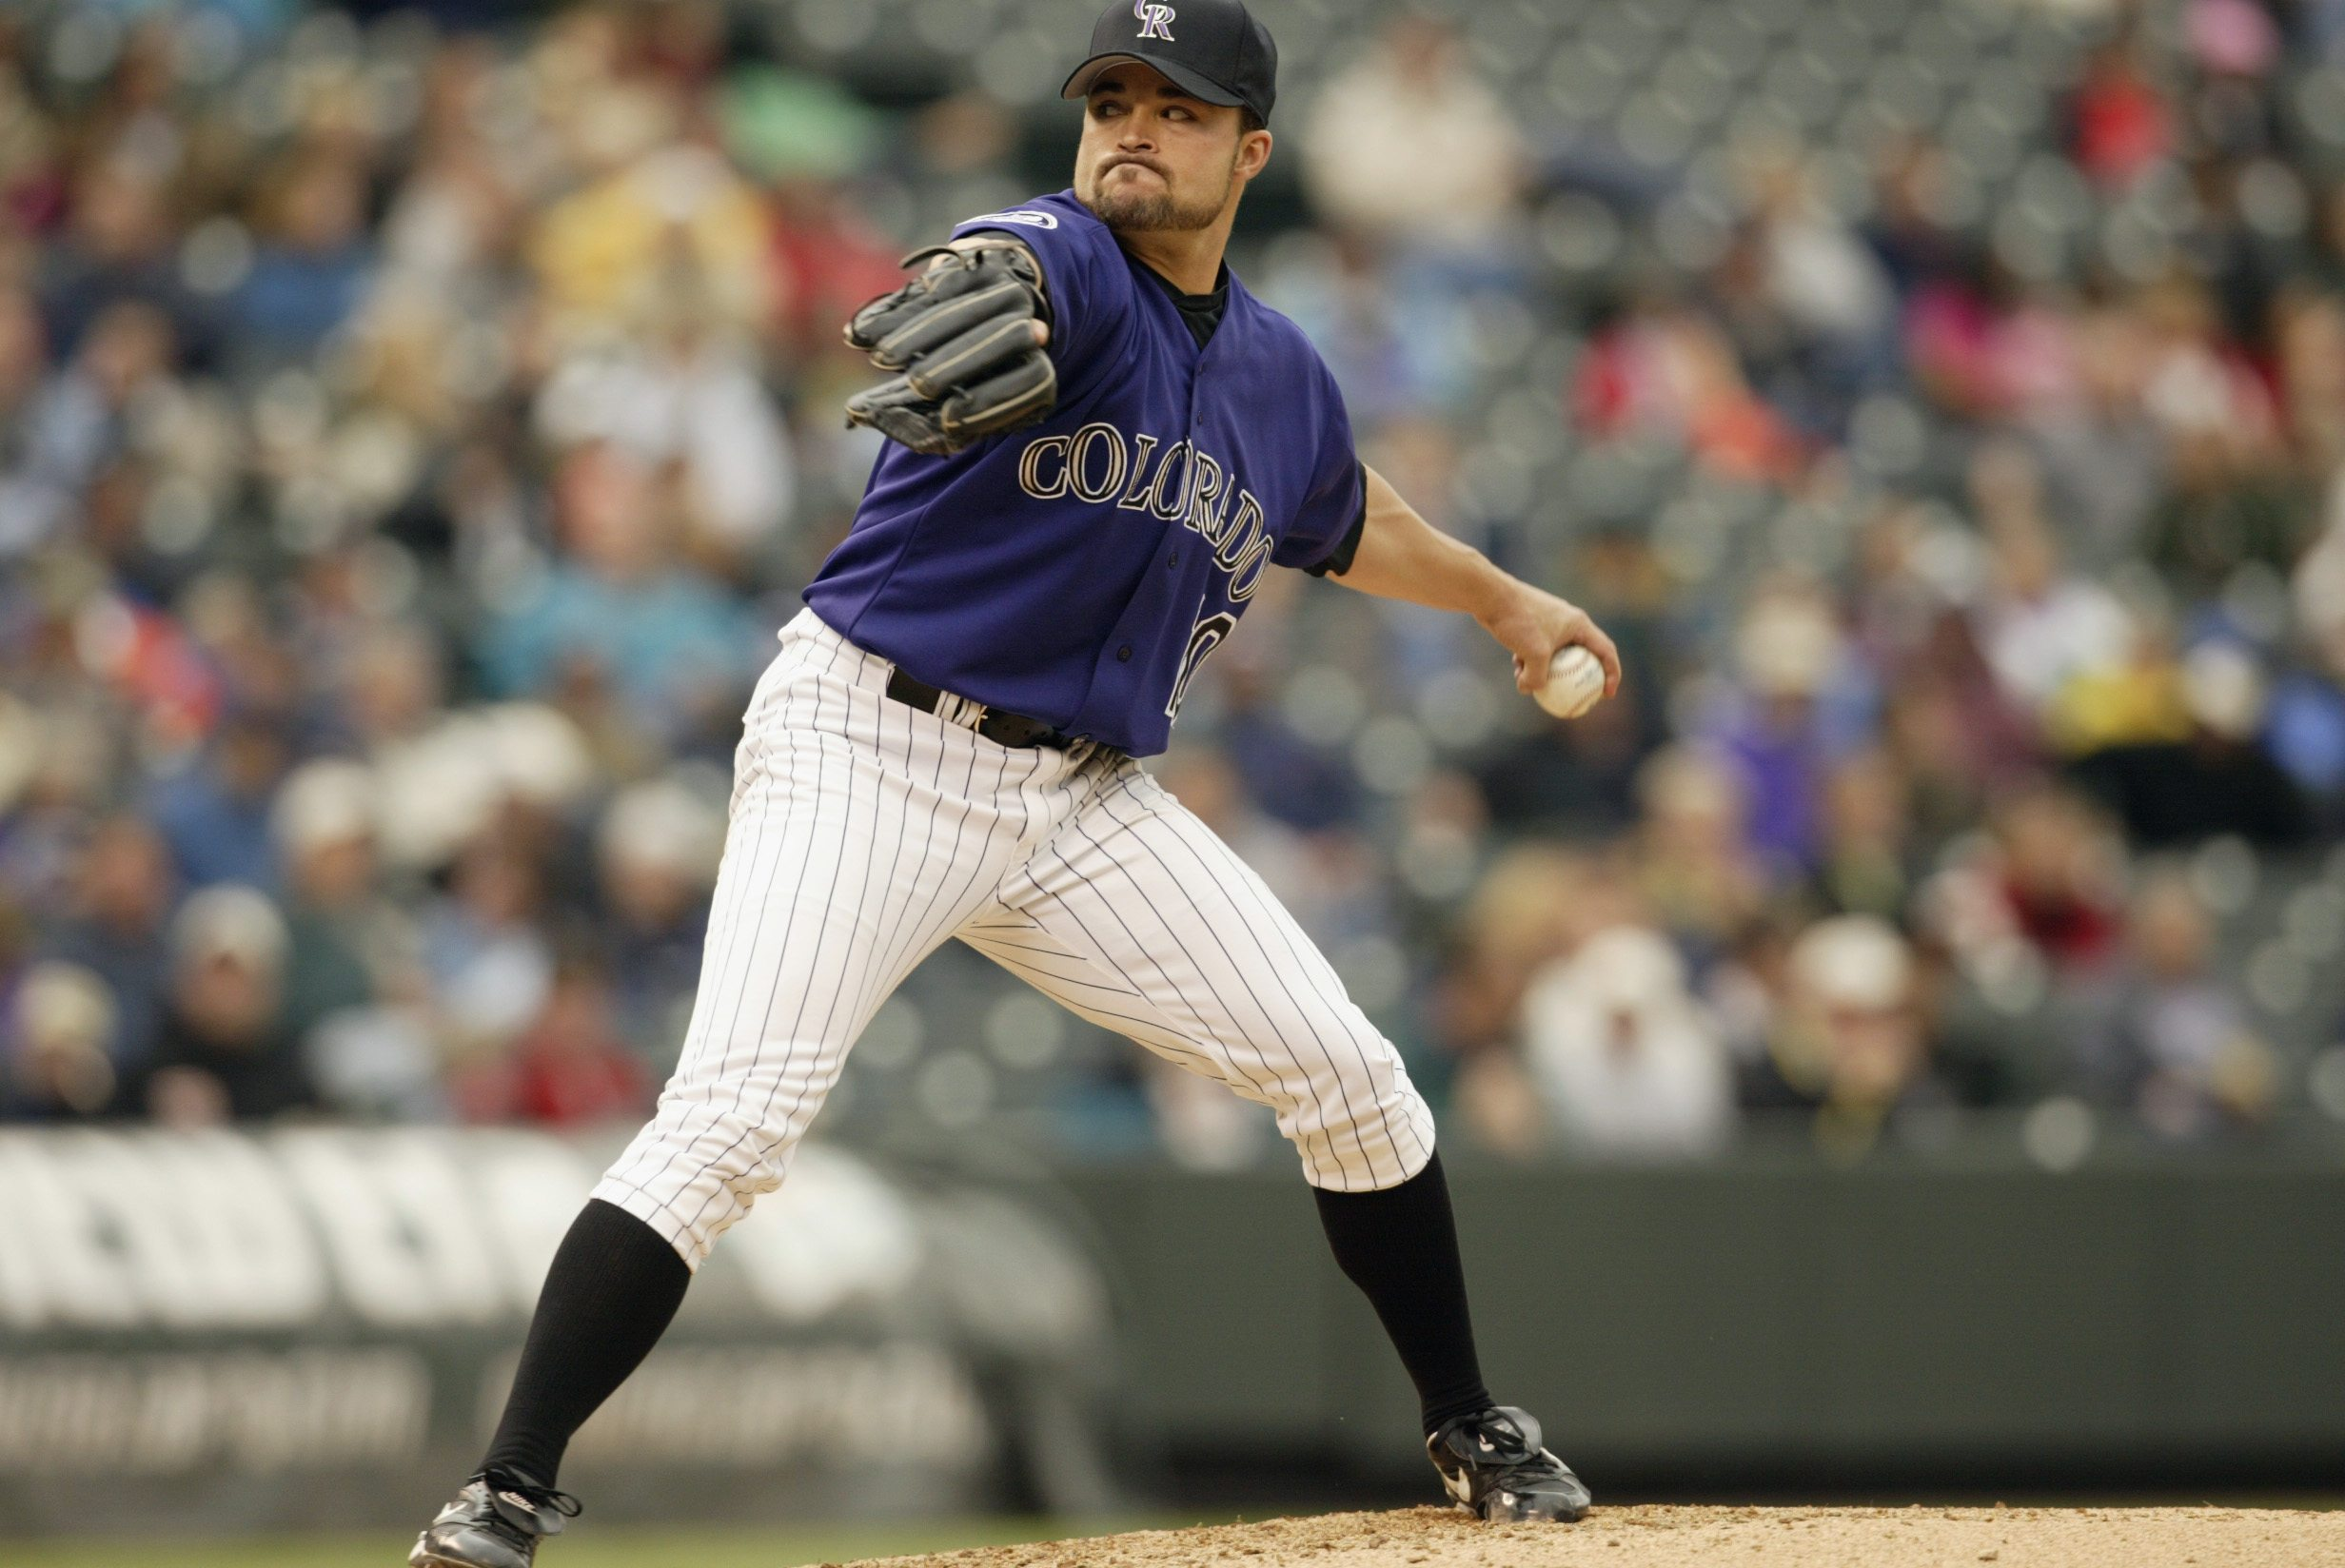 Pitcher Mike Hampton of the Colorado Rockies